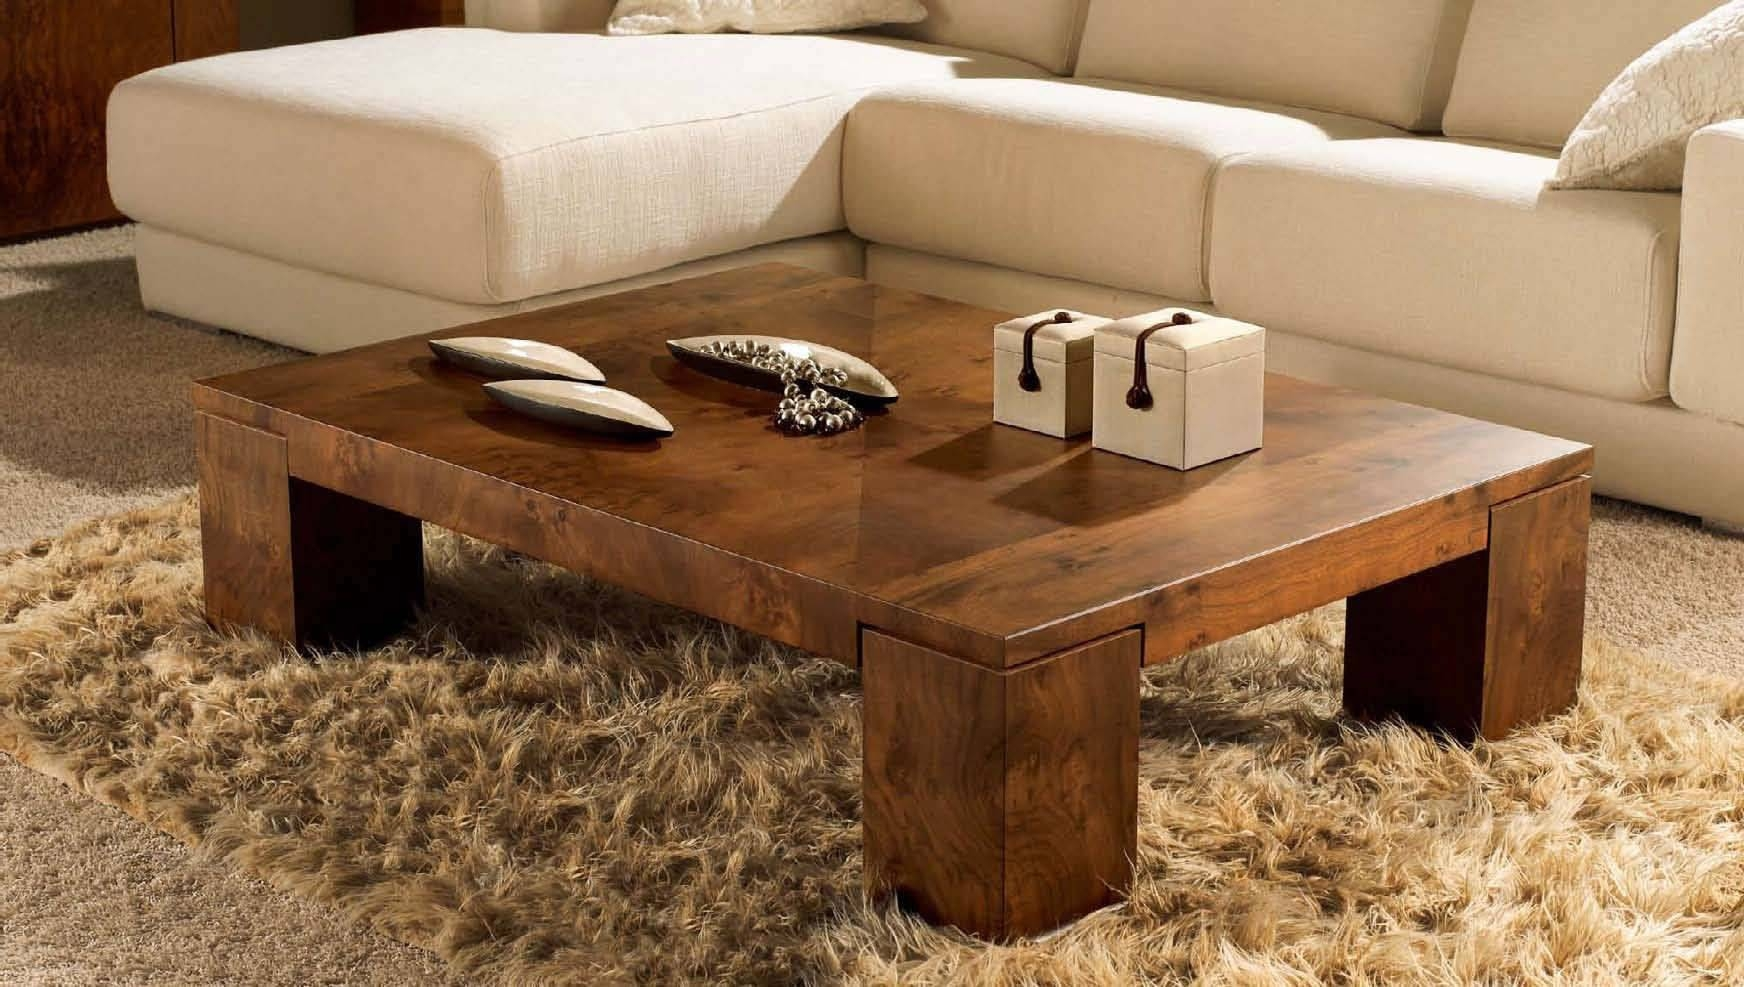 Big Floor Flower Vase Idea Big Vase Decor Set Coffee Tables For Within Big Black Coffee Tables (View 10 of 30)